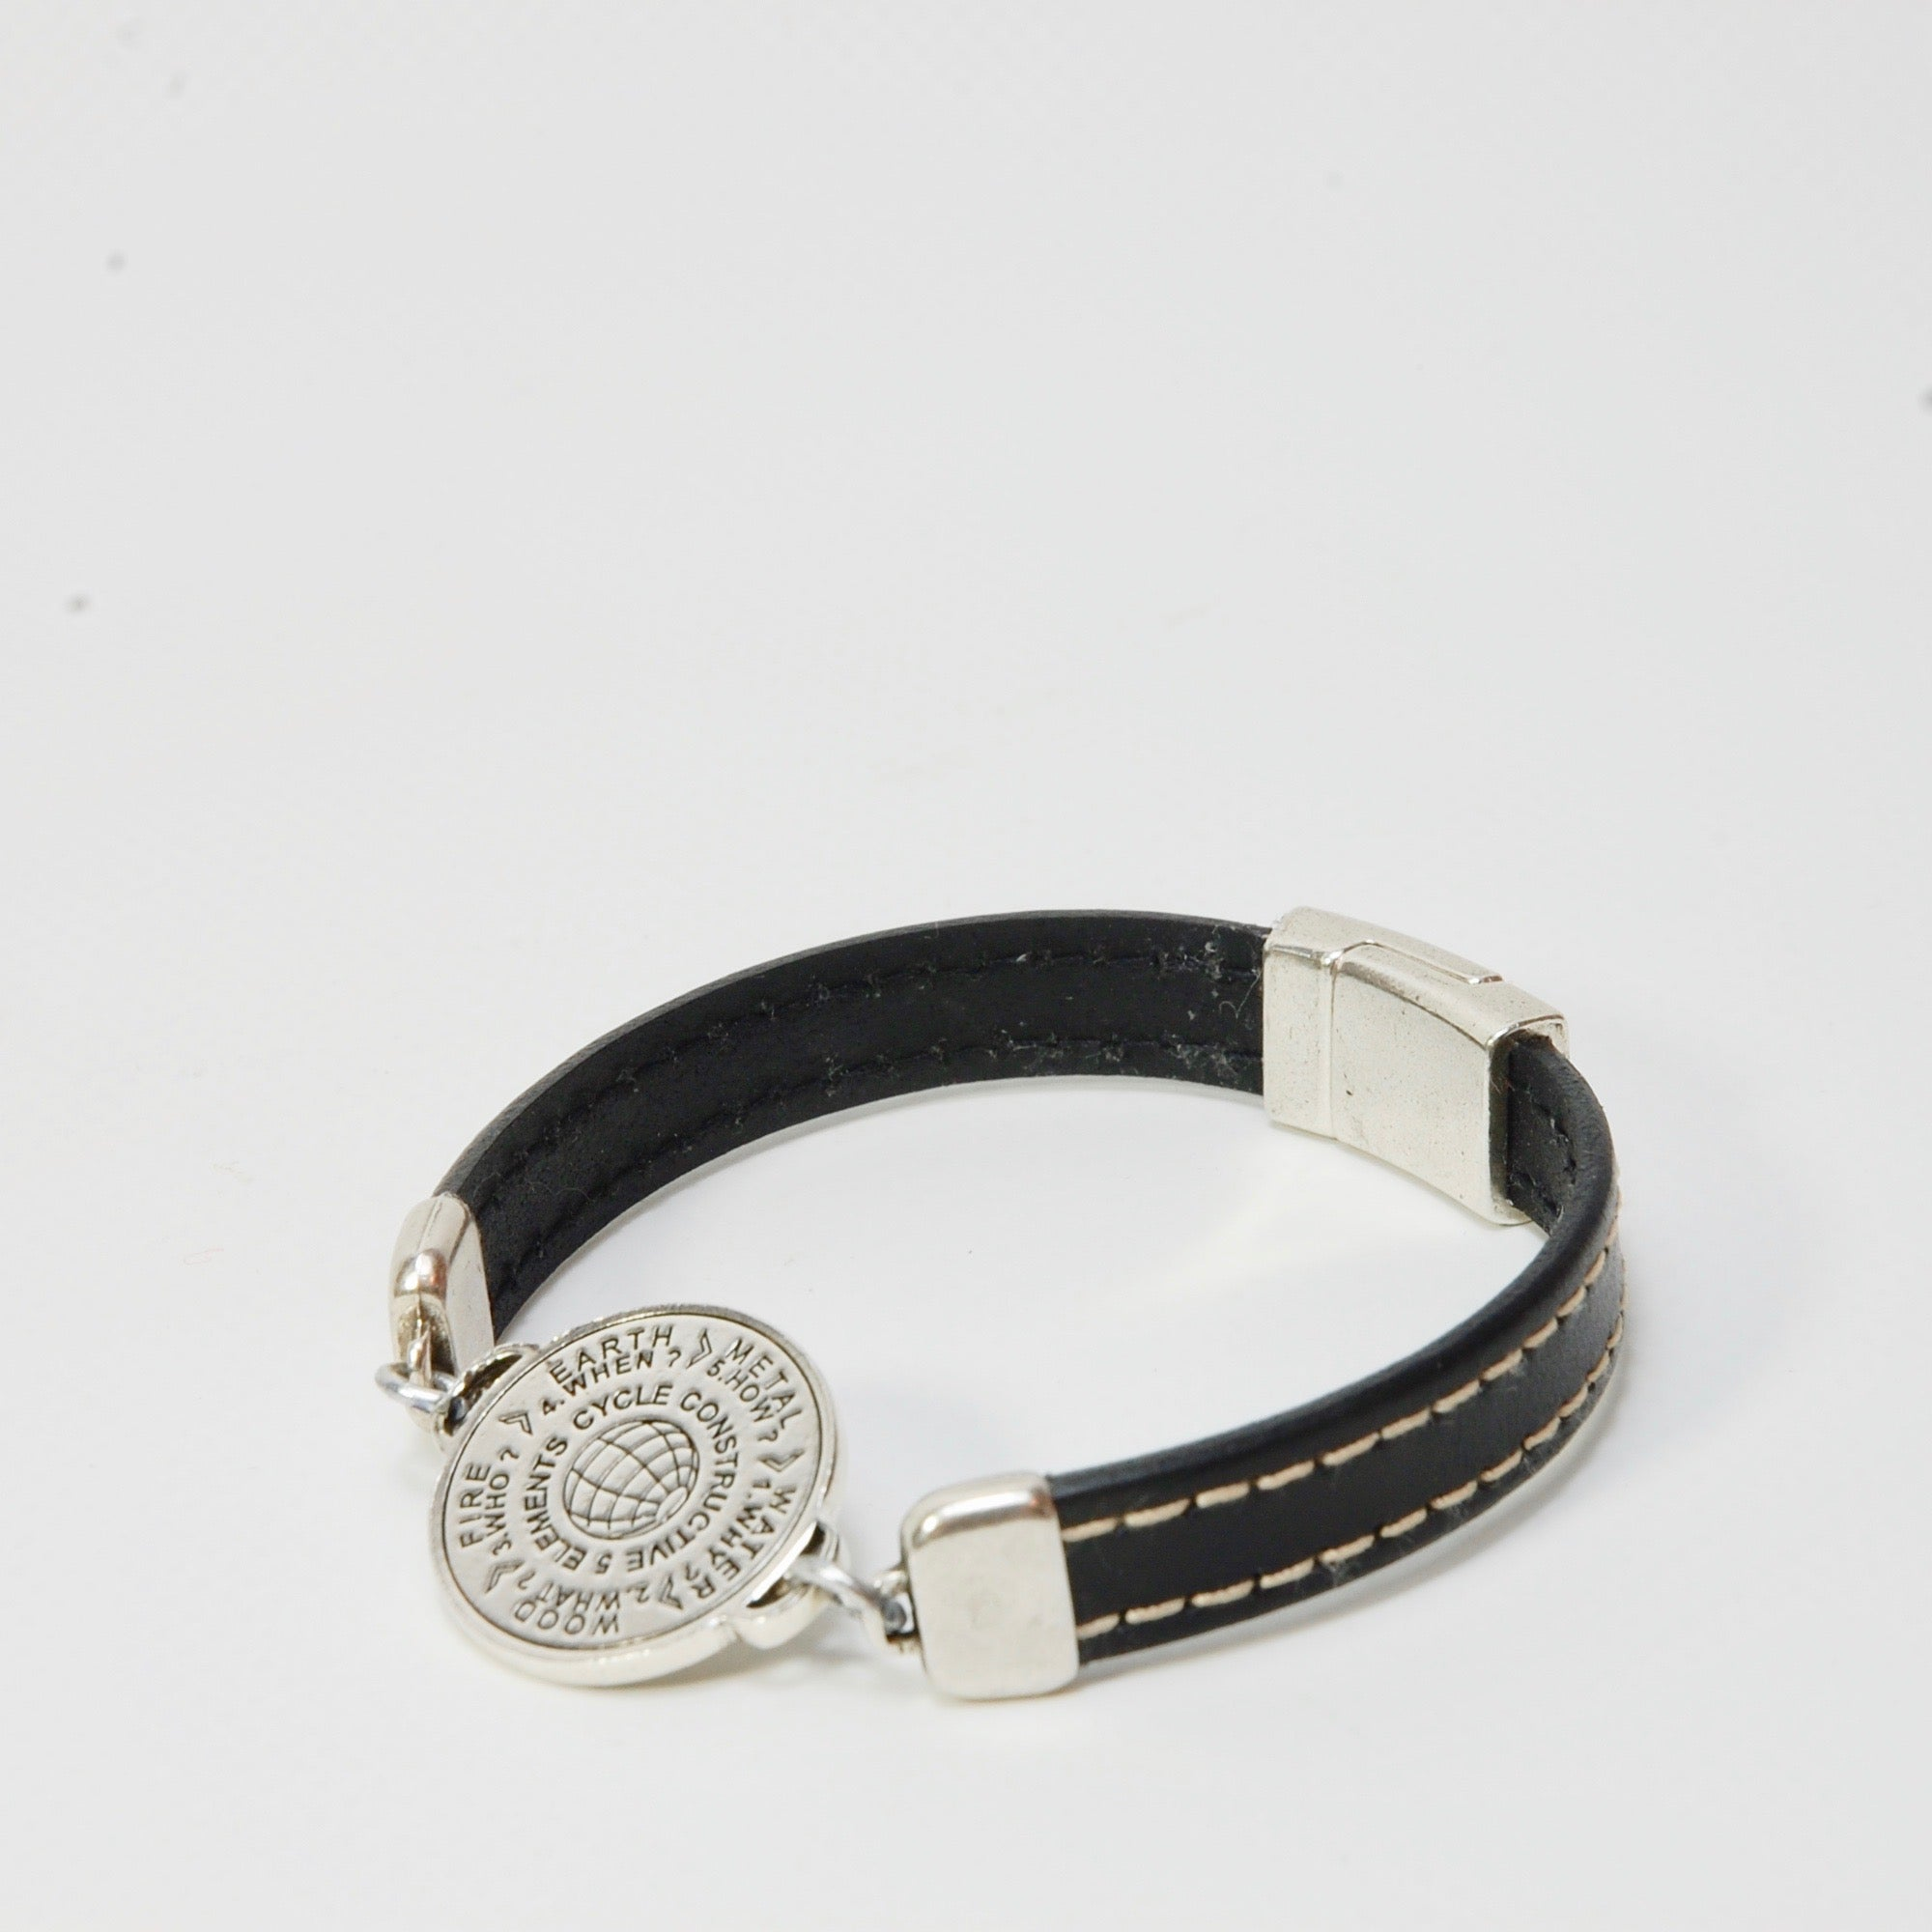 5 Elements Jewelry- Bracelet One Round - black color*